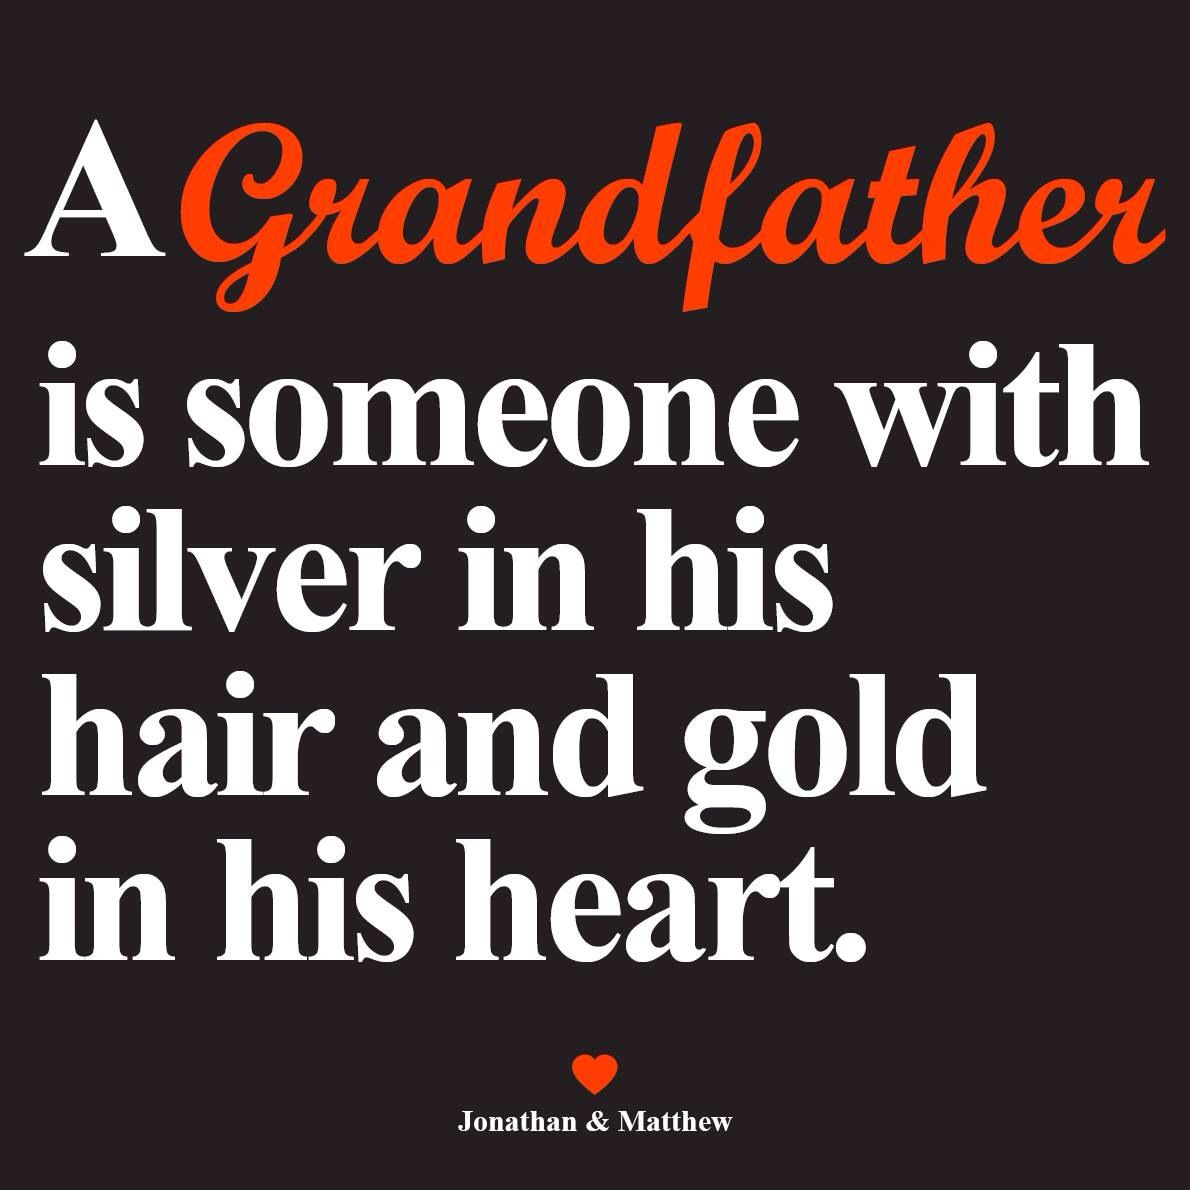 Quotes For Grandpa Pinmargaret Martinez On Quotes  Pinterest  Birthday Messages